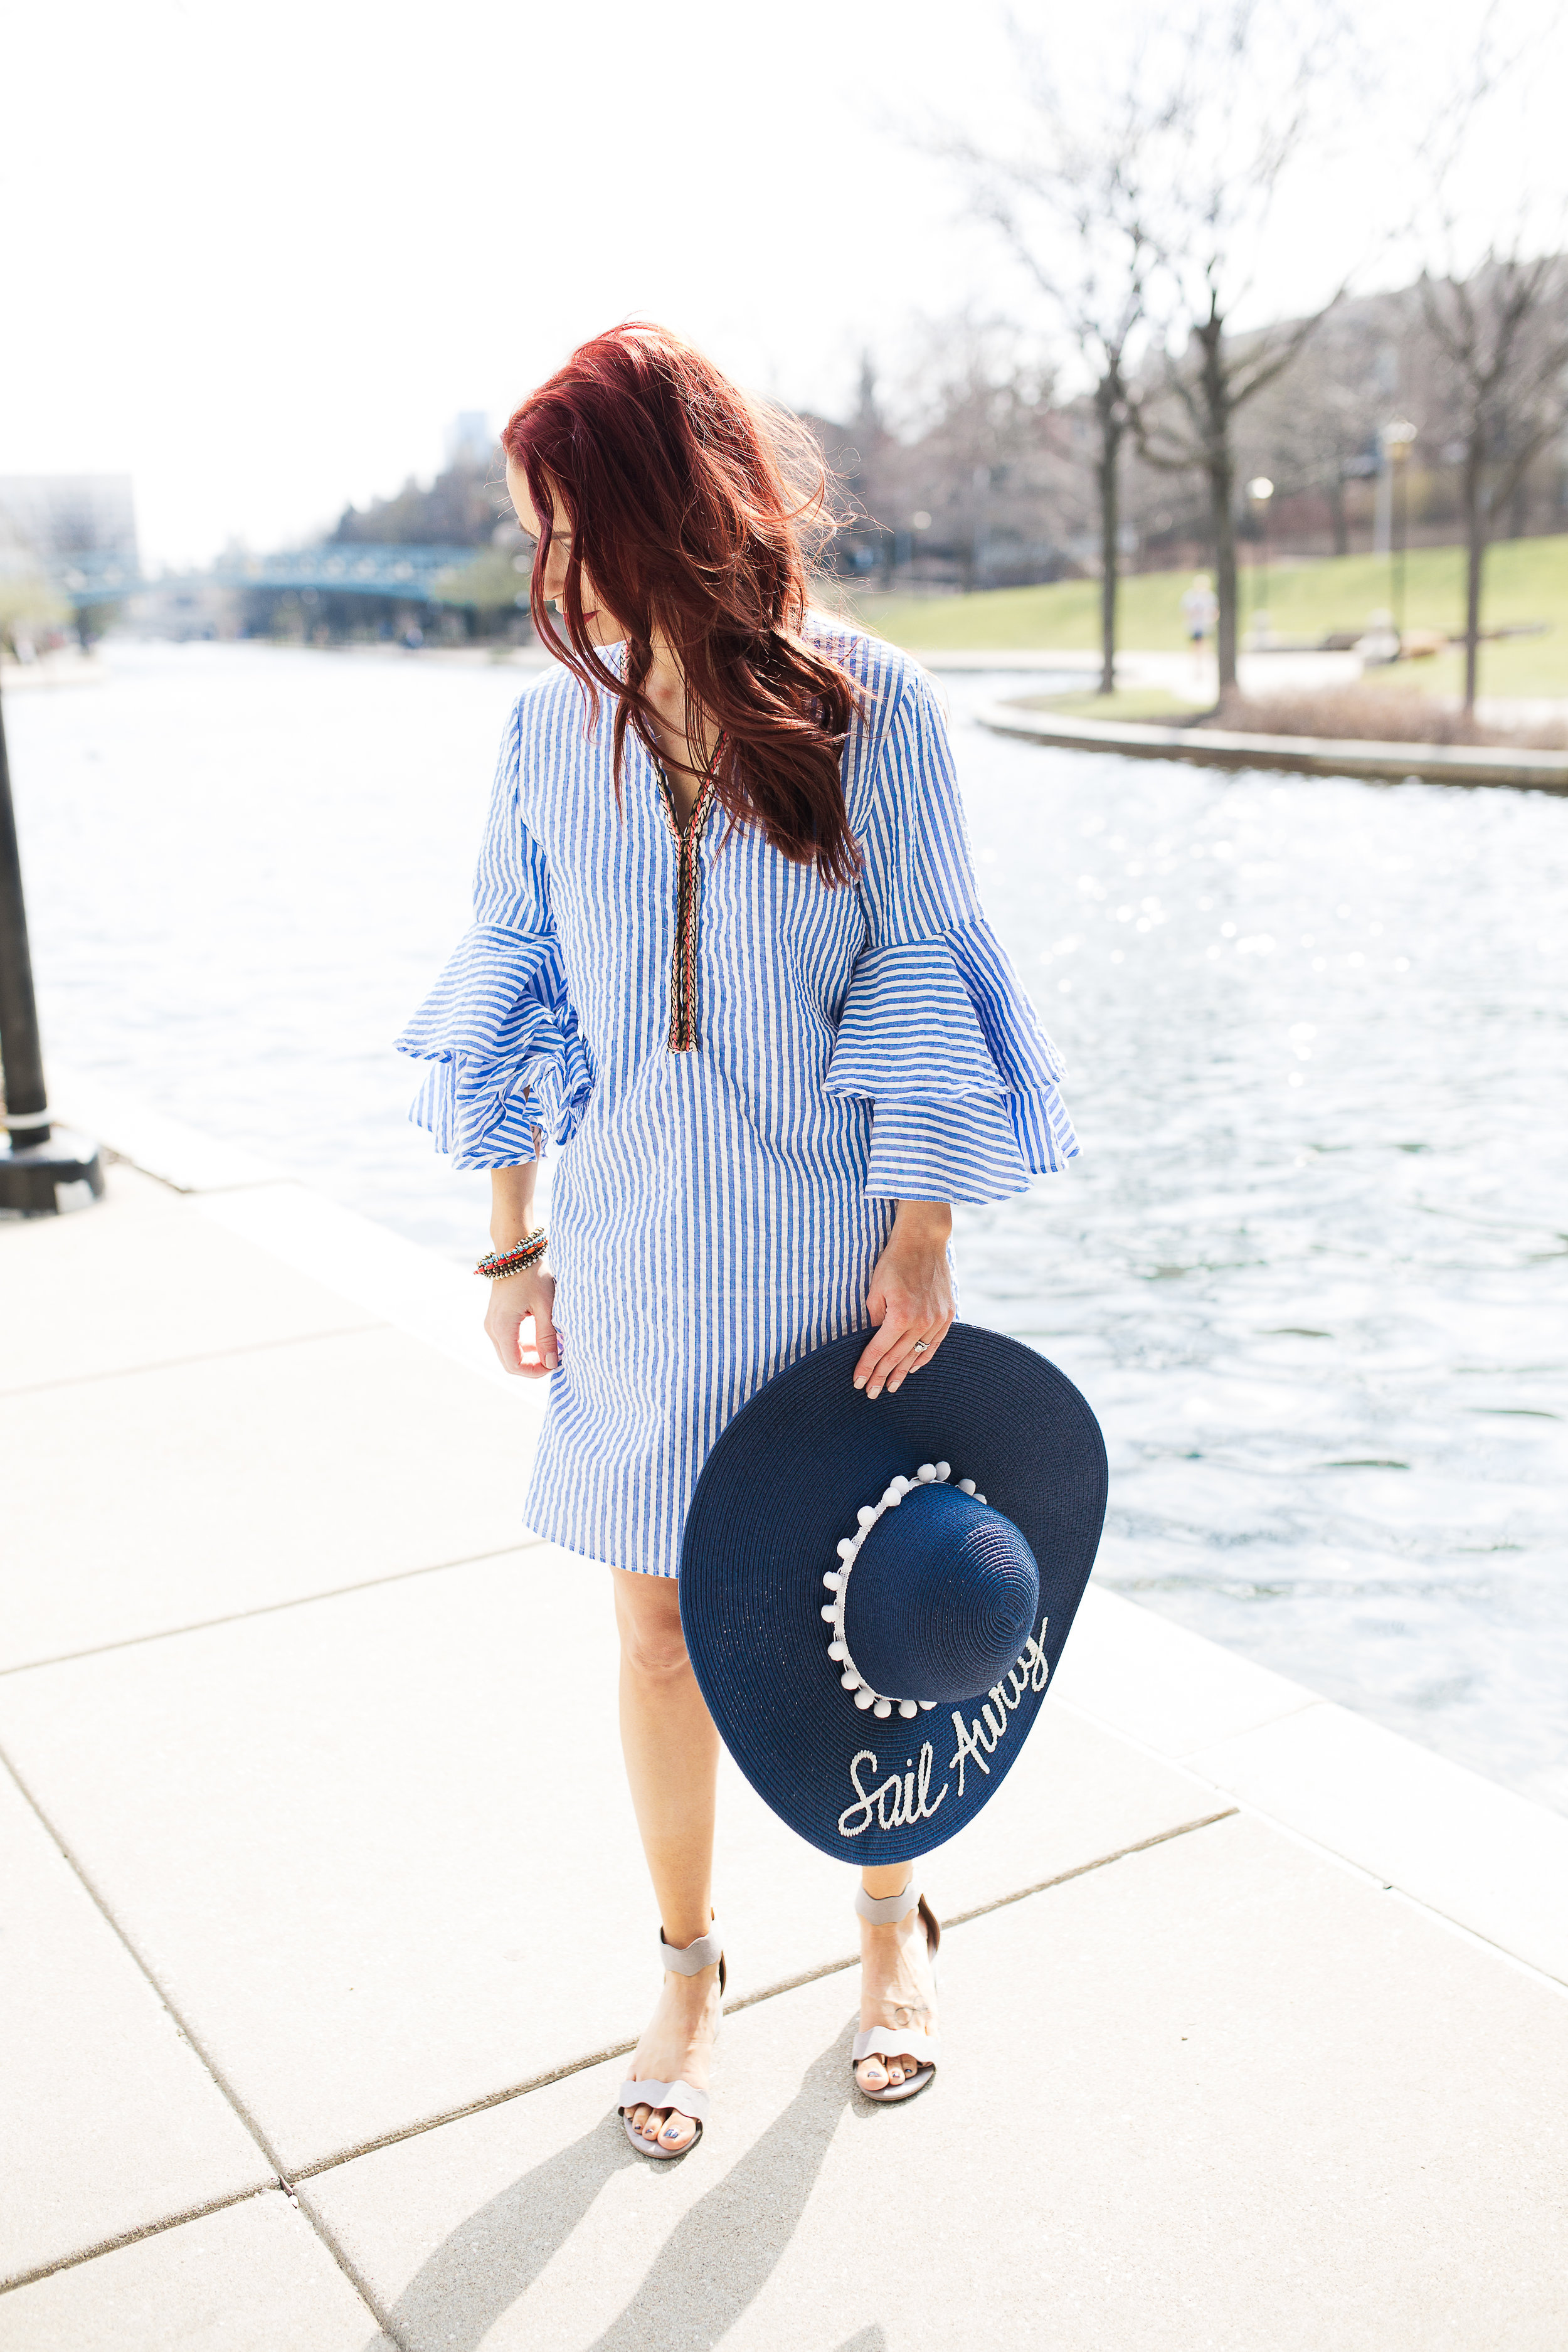 Striped Dress,  Red Dress Boutique  || Sail Away Hat,  By Born and Made  || Grey Sandals,  Red Dress Boutique  || Bracelets,  Pura Vida Bracelets (use code TRENDYININDY20 for 20% off) || Photography,  Casey Ardizzone